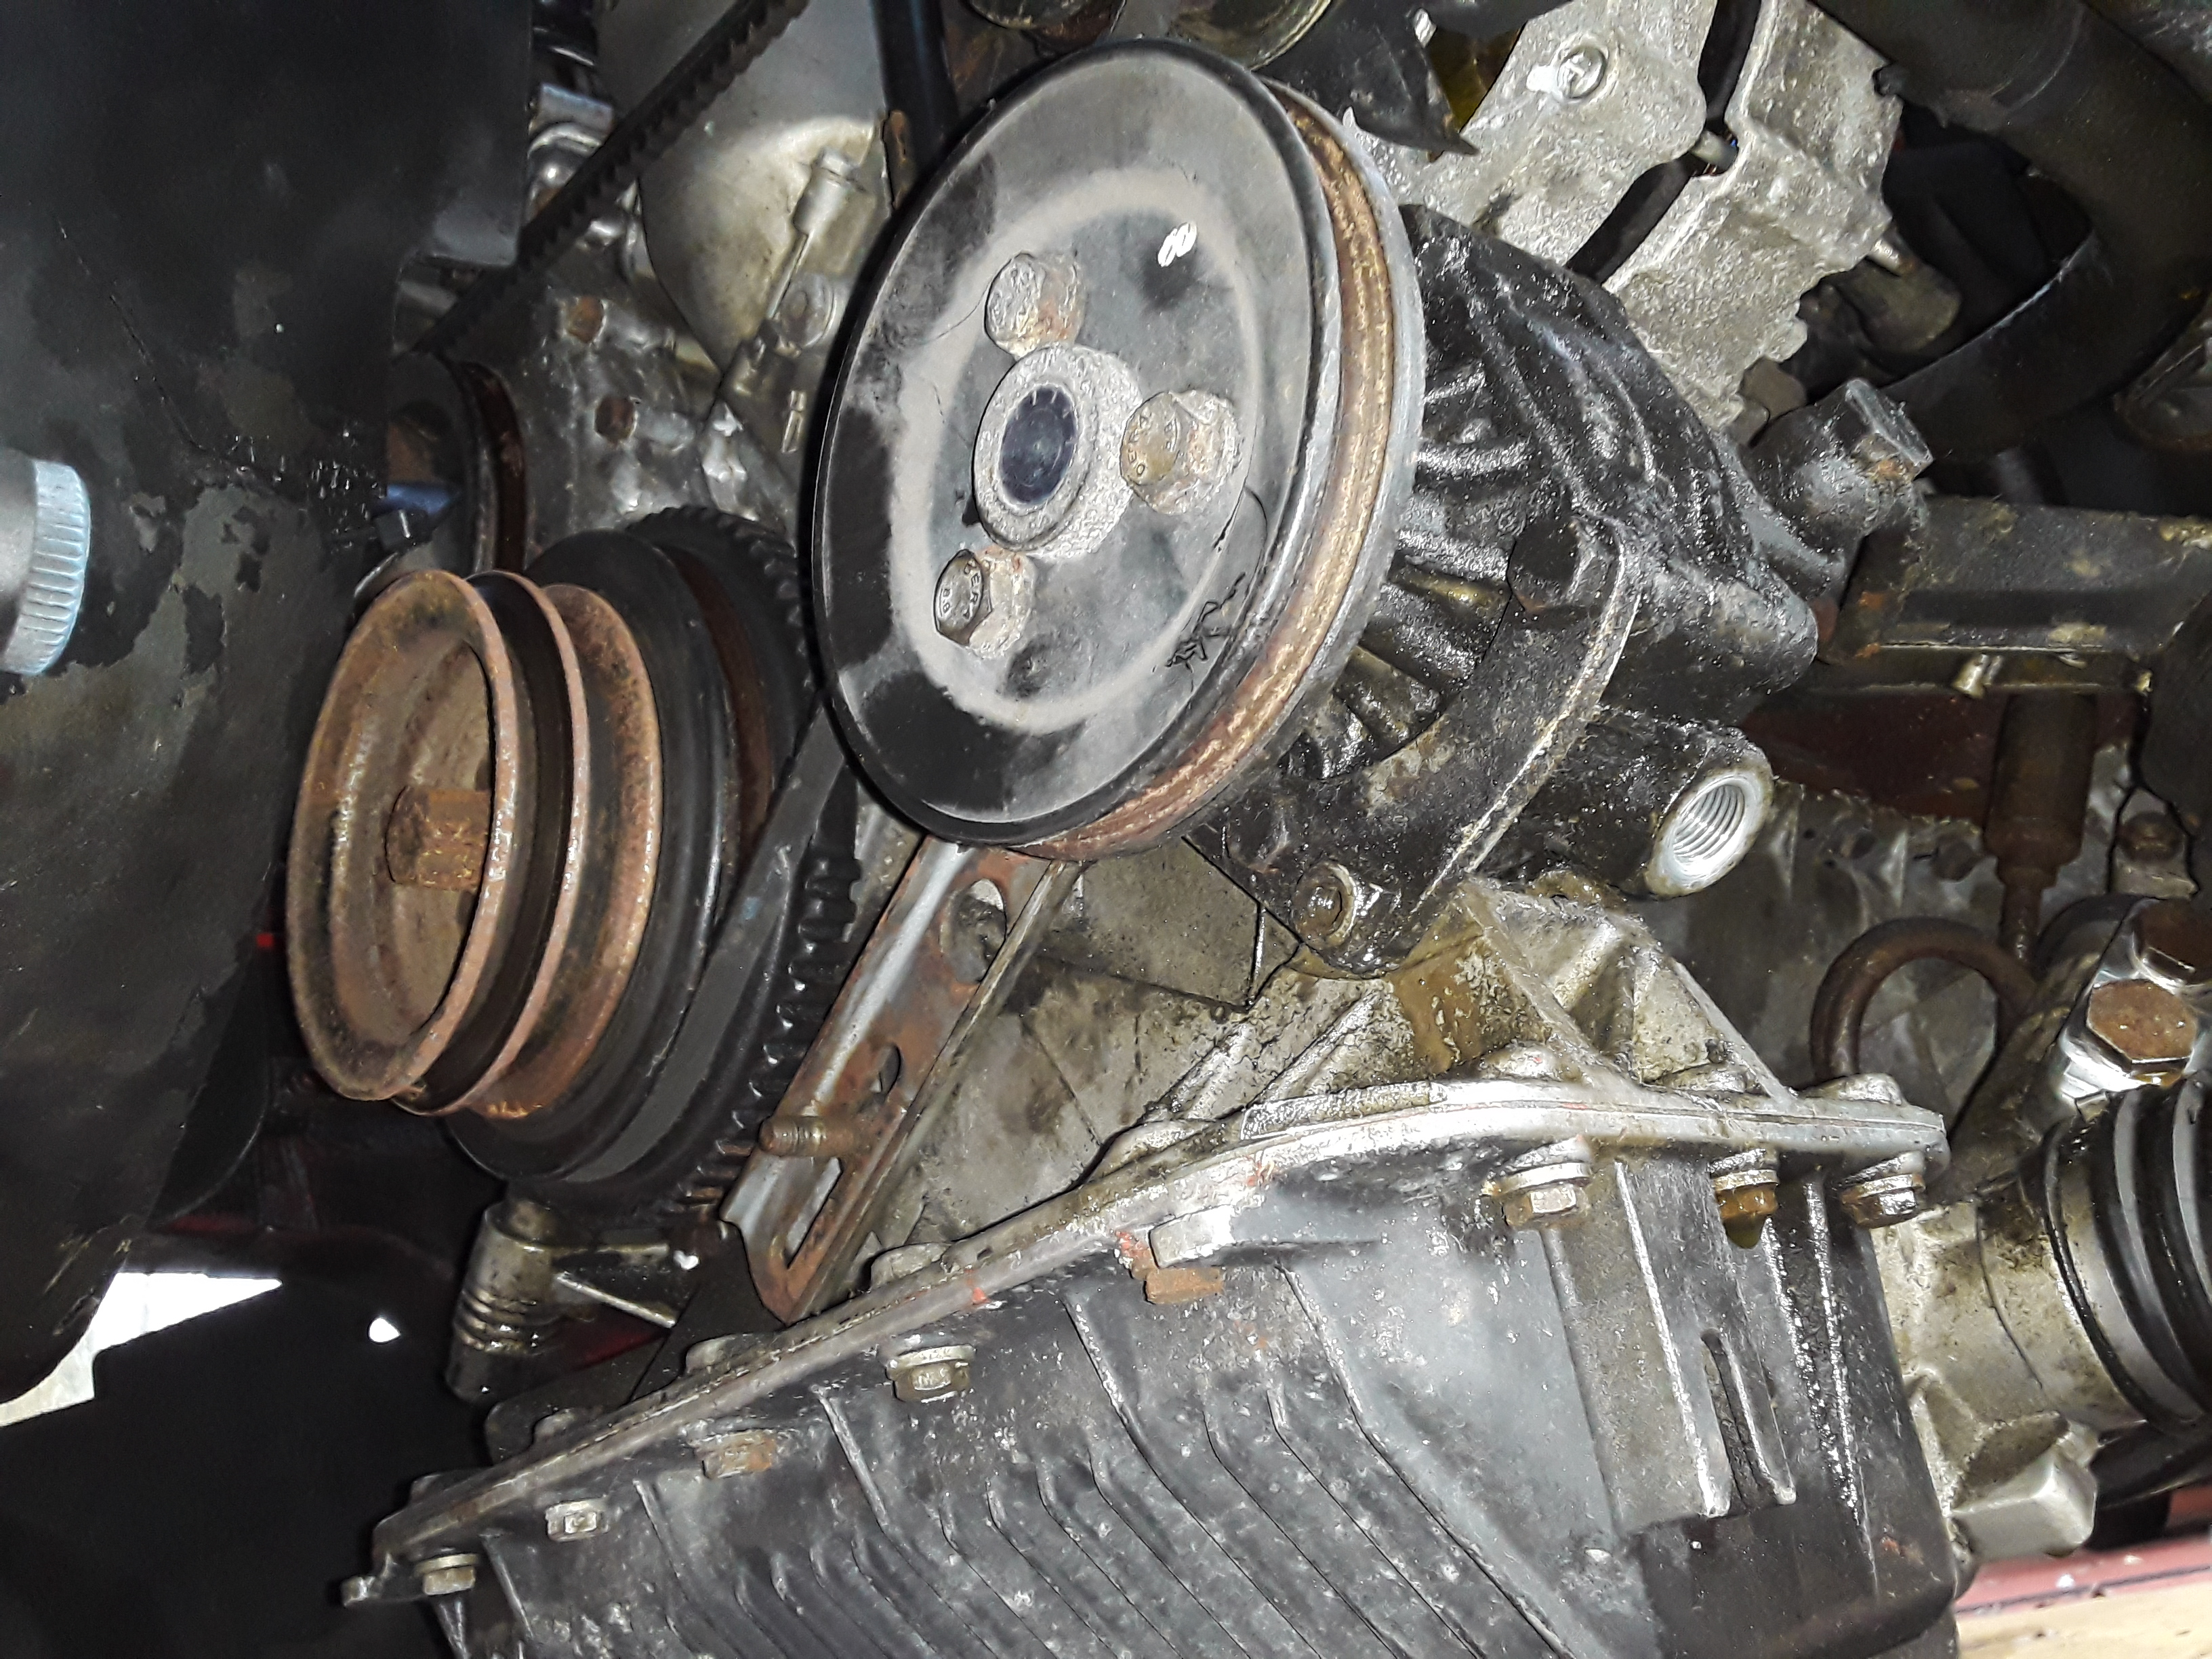 Rolling Blockout A Proper Tutorial On The Deletion Of An M42 Power Steering System Part Two Rye30 Racing New Posts On Sundays